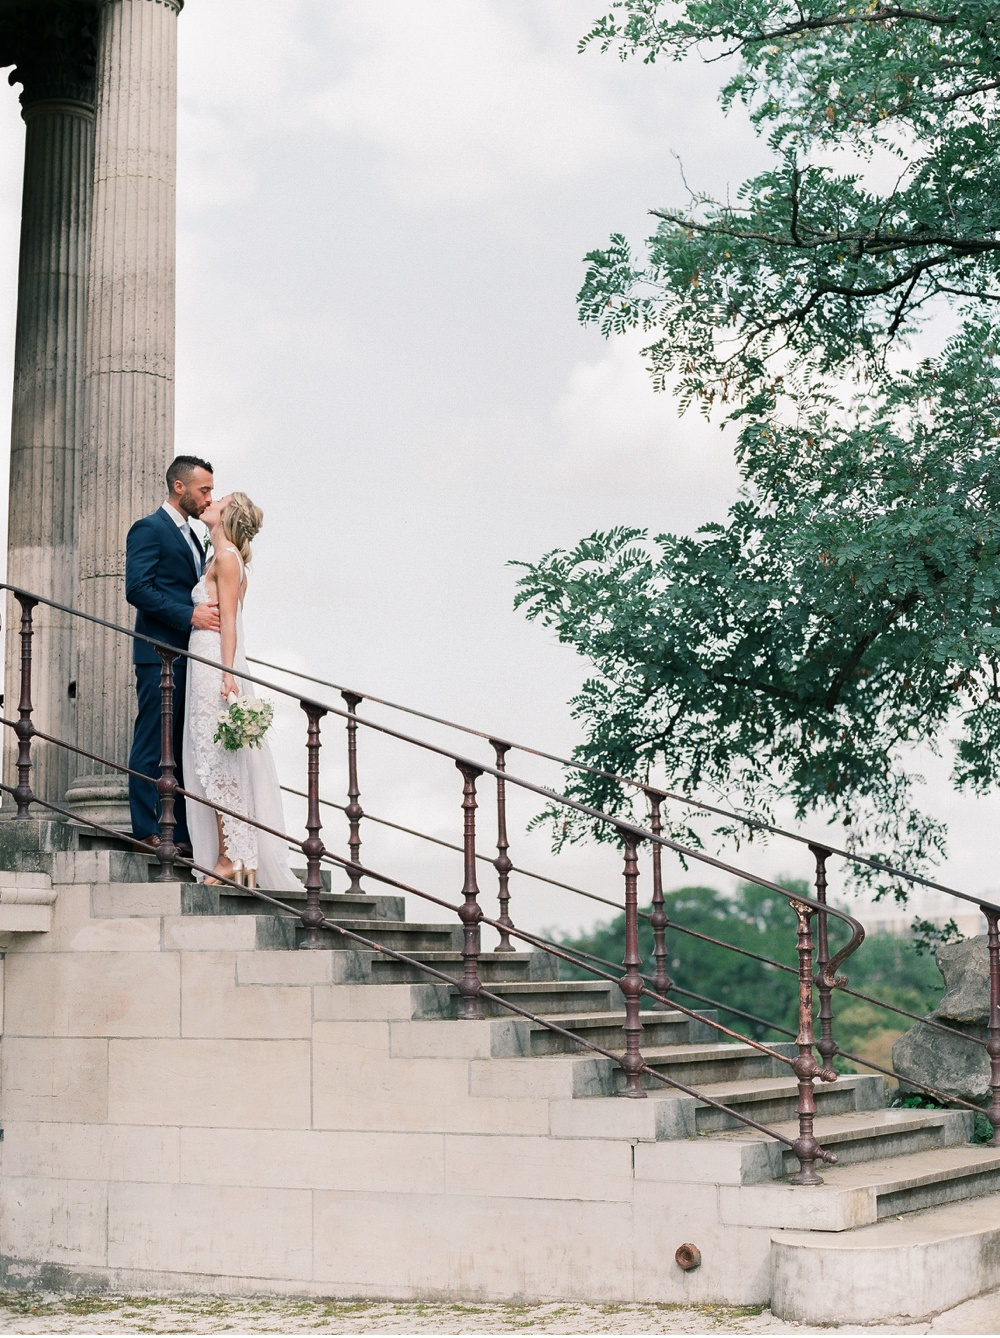 Paris_Elopement_wedding_Photographer©MadalinaSheldon_0052.jpg